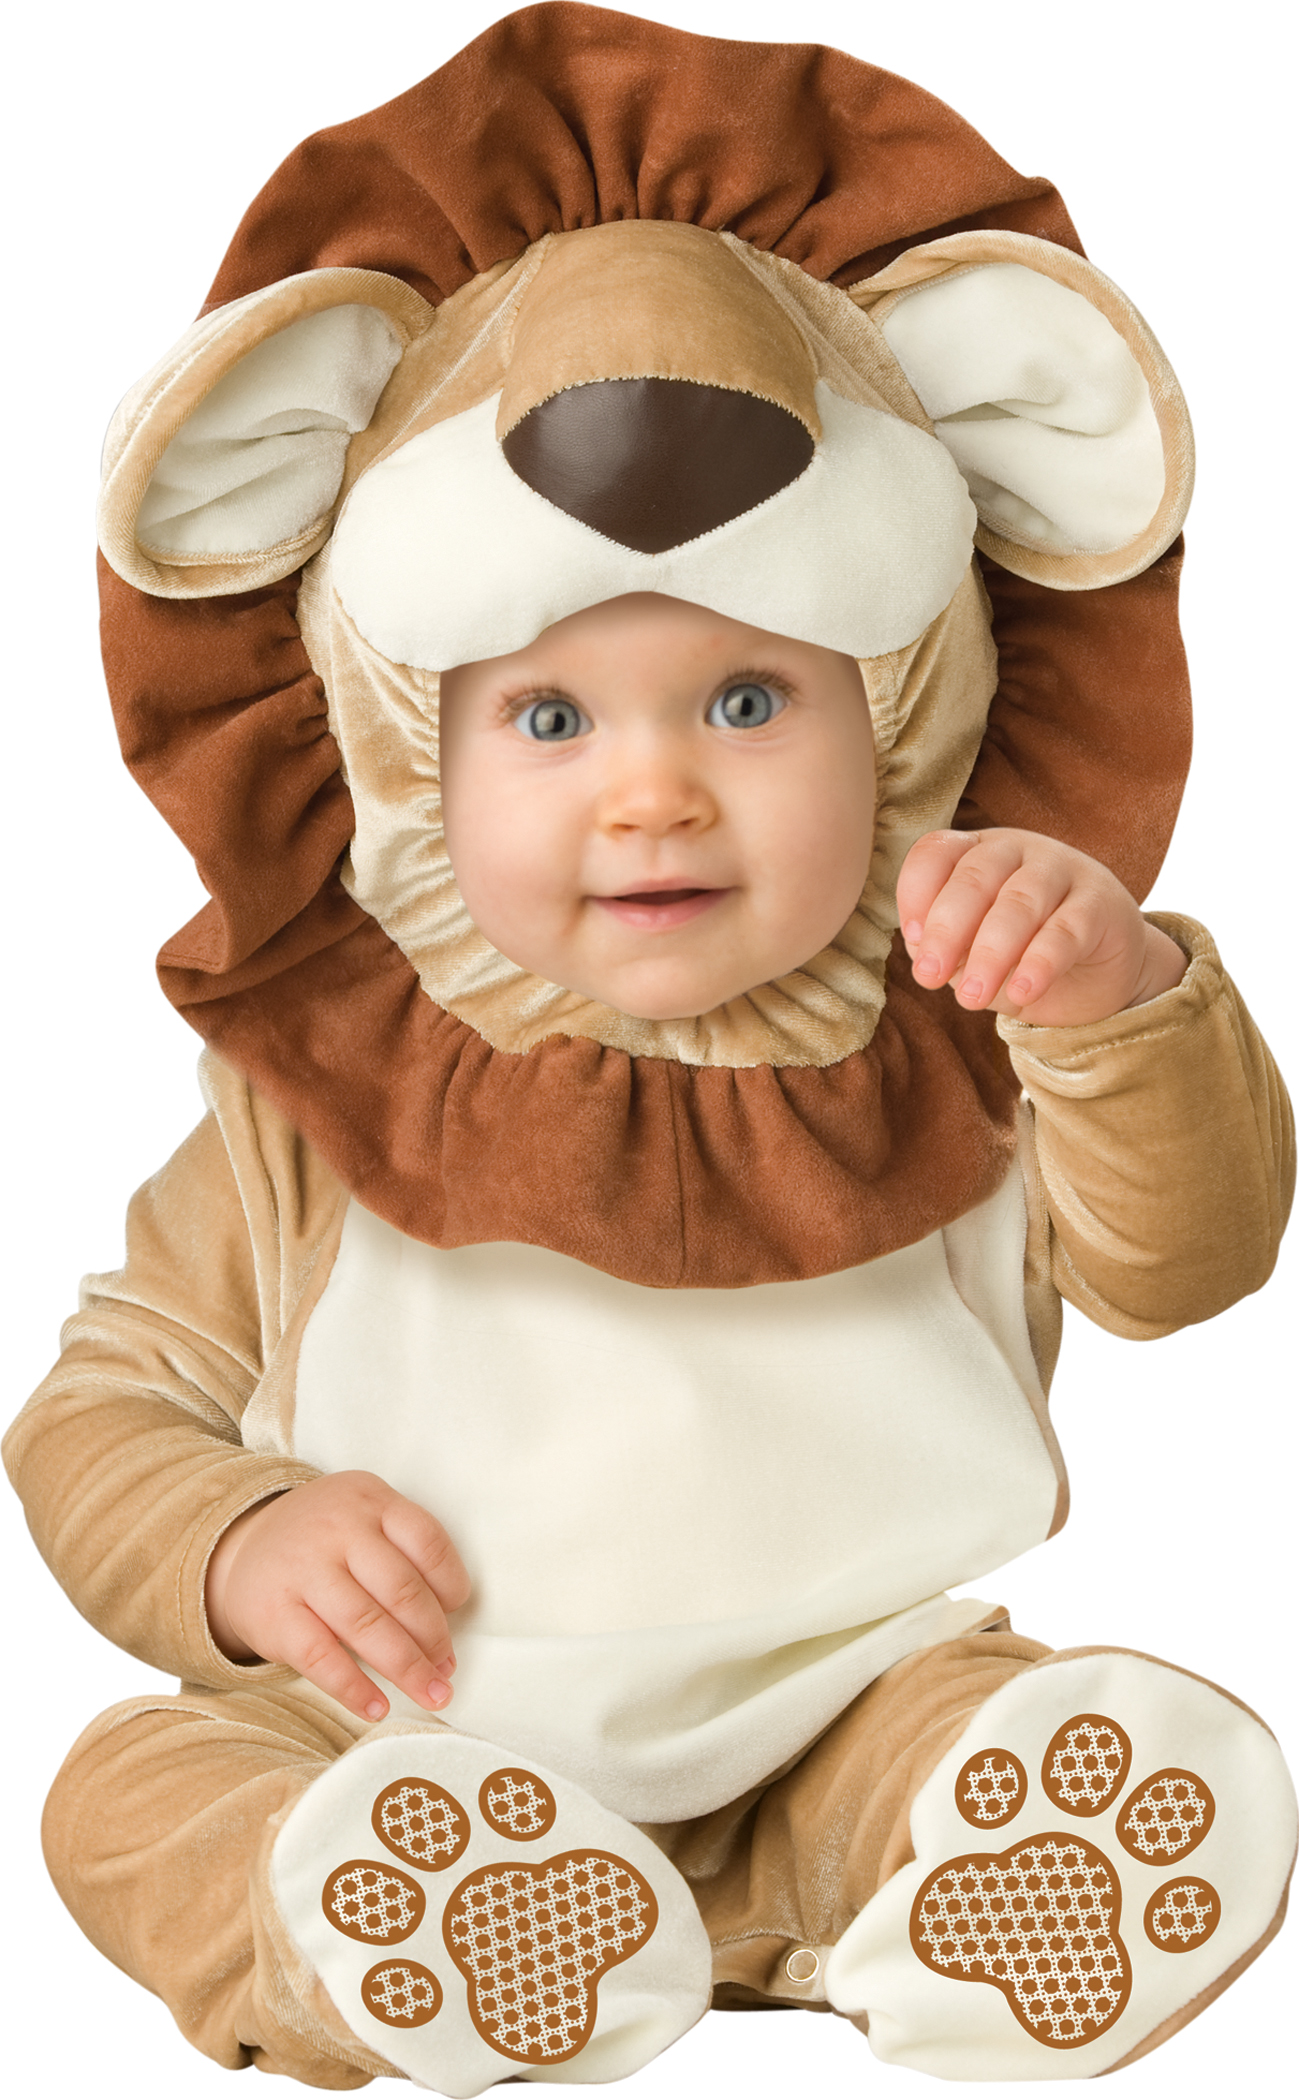 Buy low price, high quality animal dresse baby with worldwide shipping on needloanbadcredit.cf